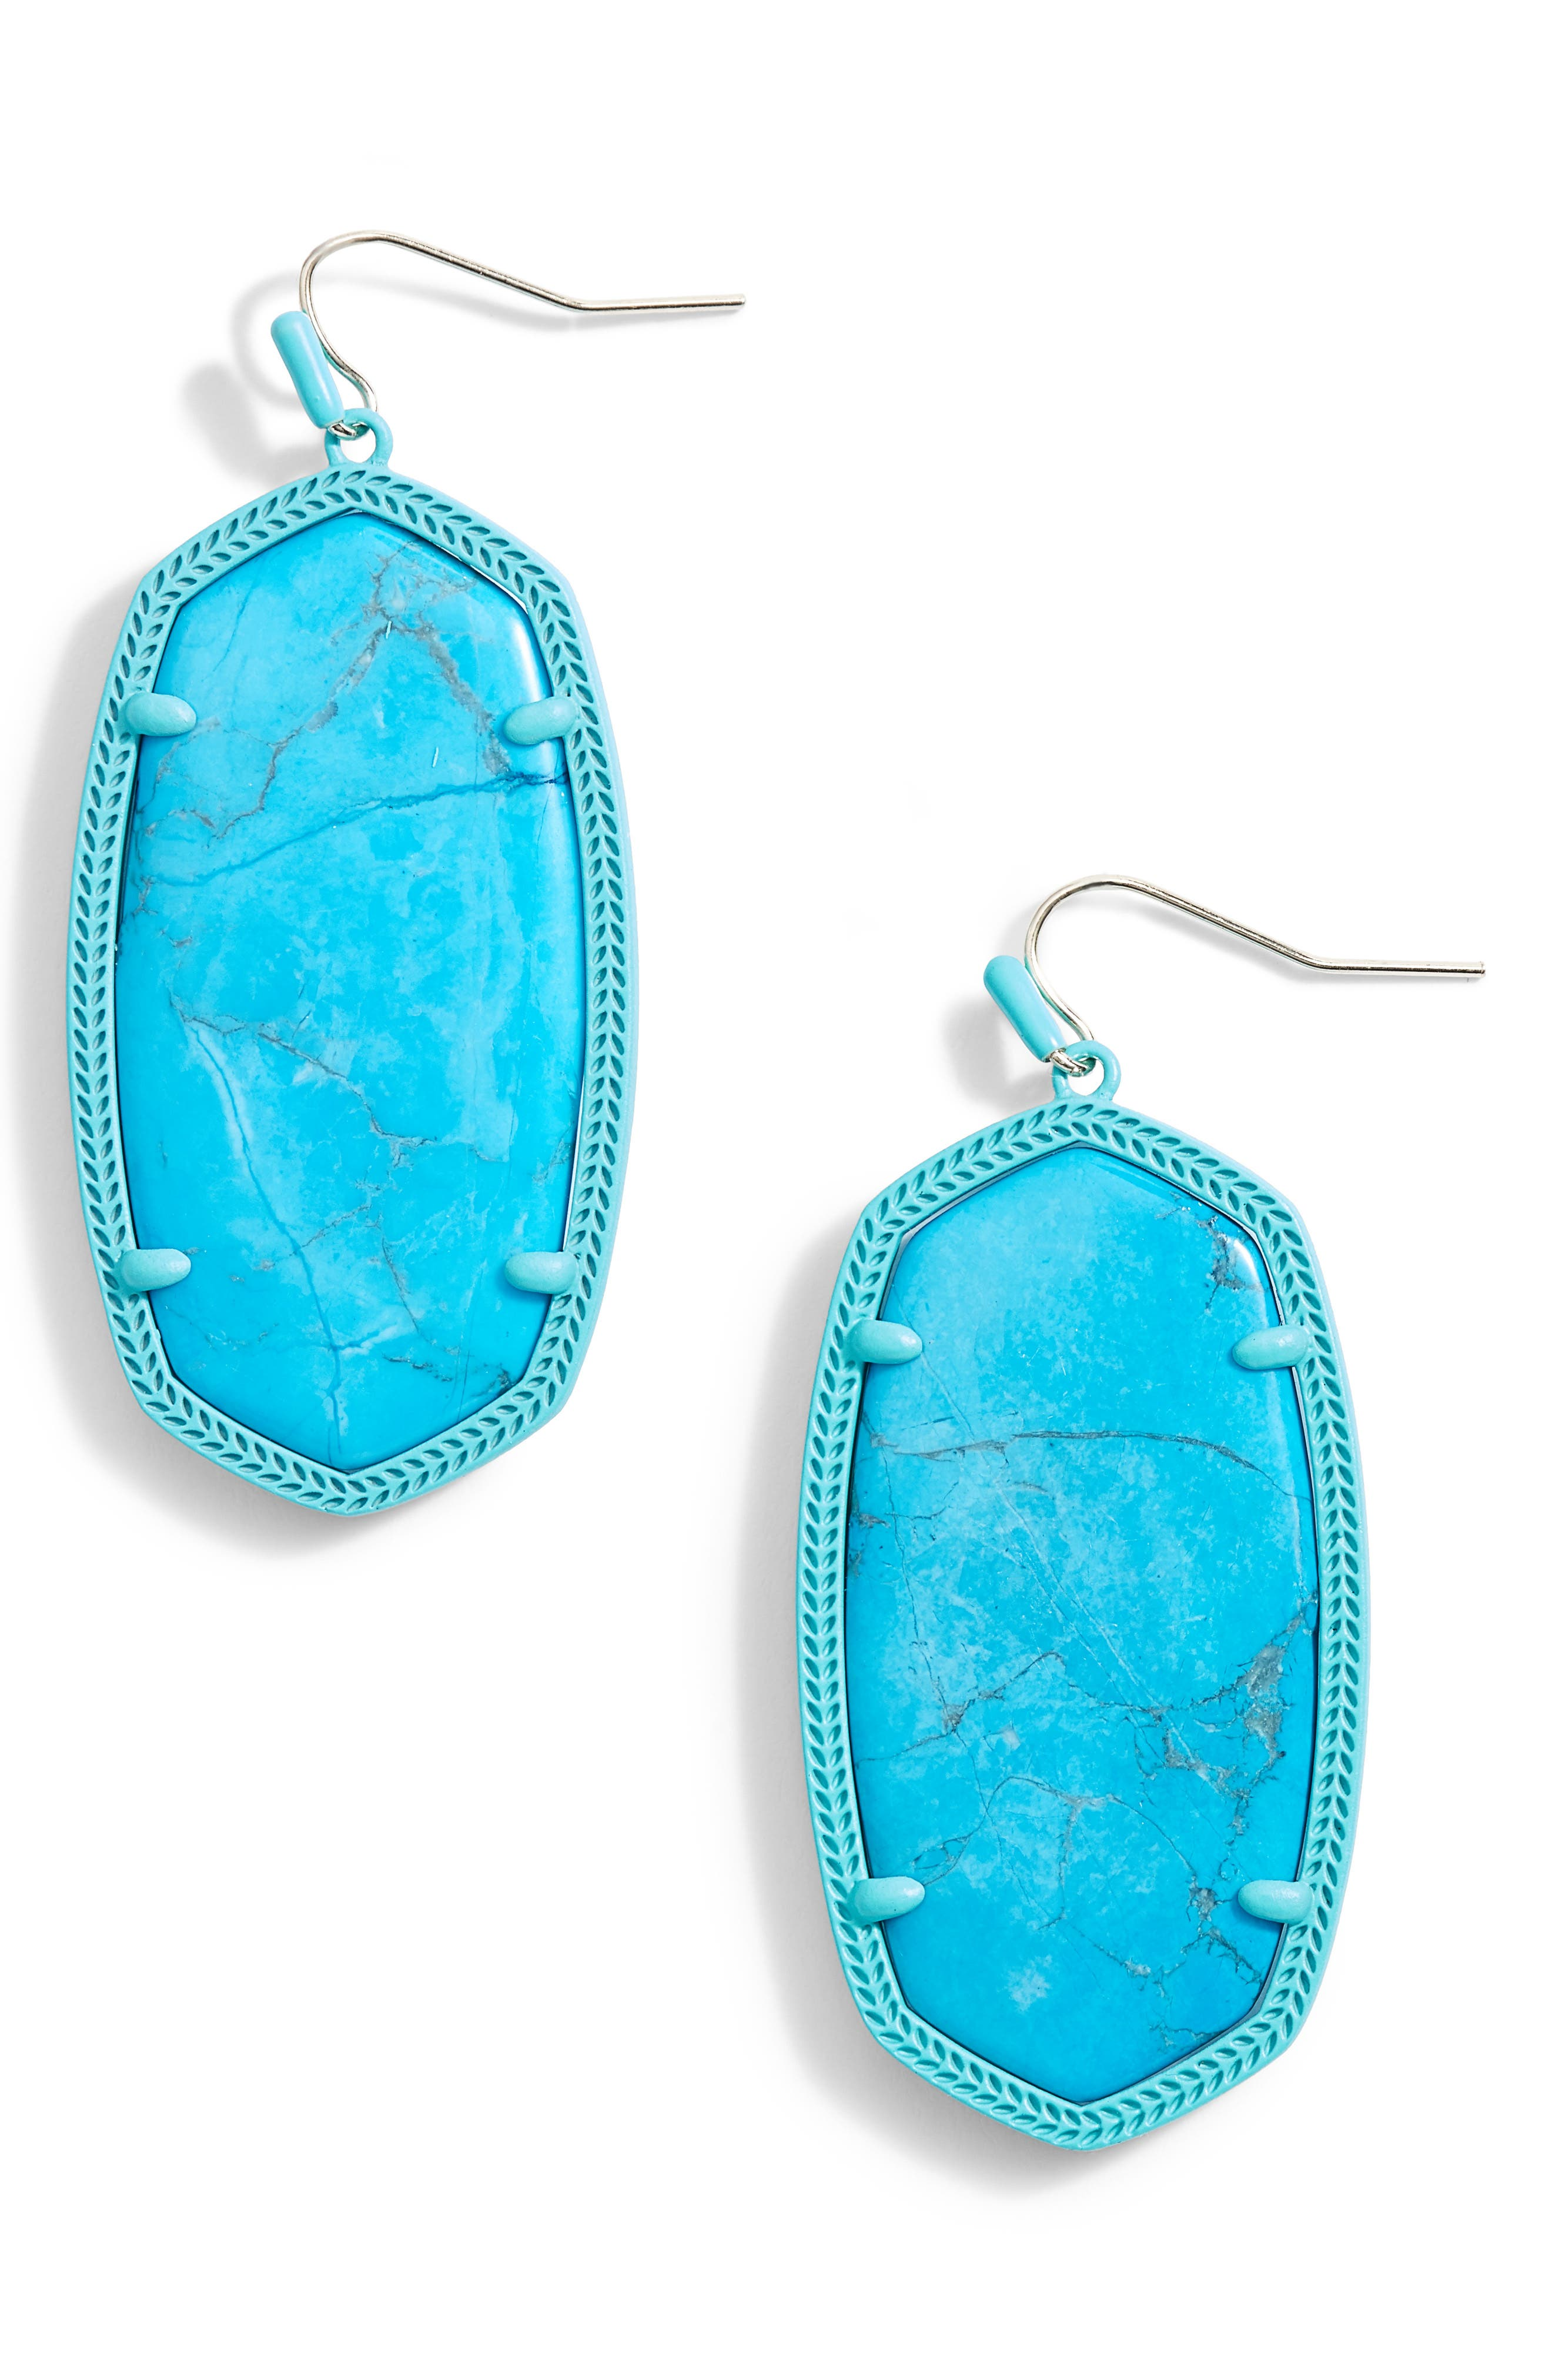 Danielle - Large Oval Statement Earrings,                             Main thumbnail 16, color,